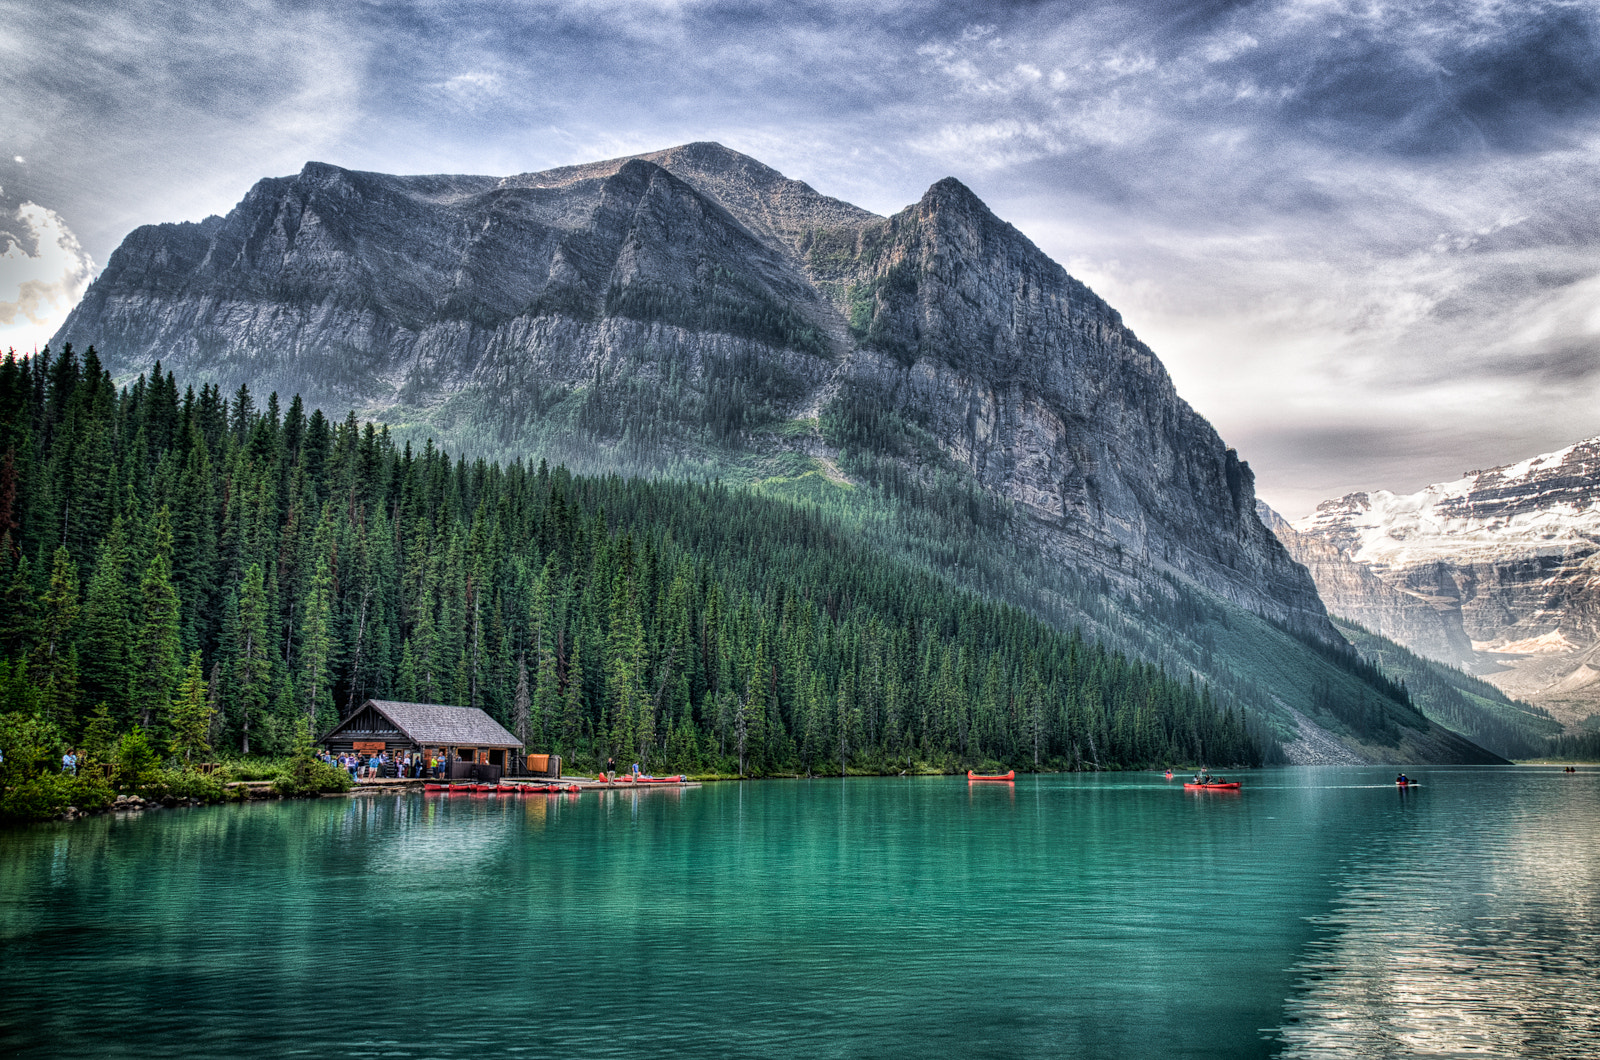 Photograph Lake Louise by Steve Steinmetz on 500px